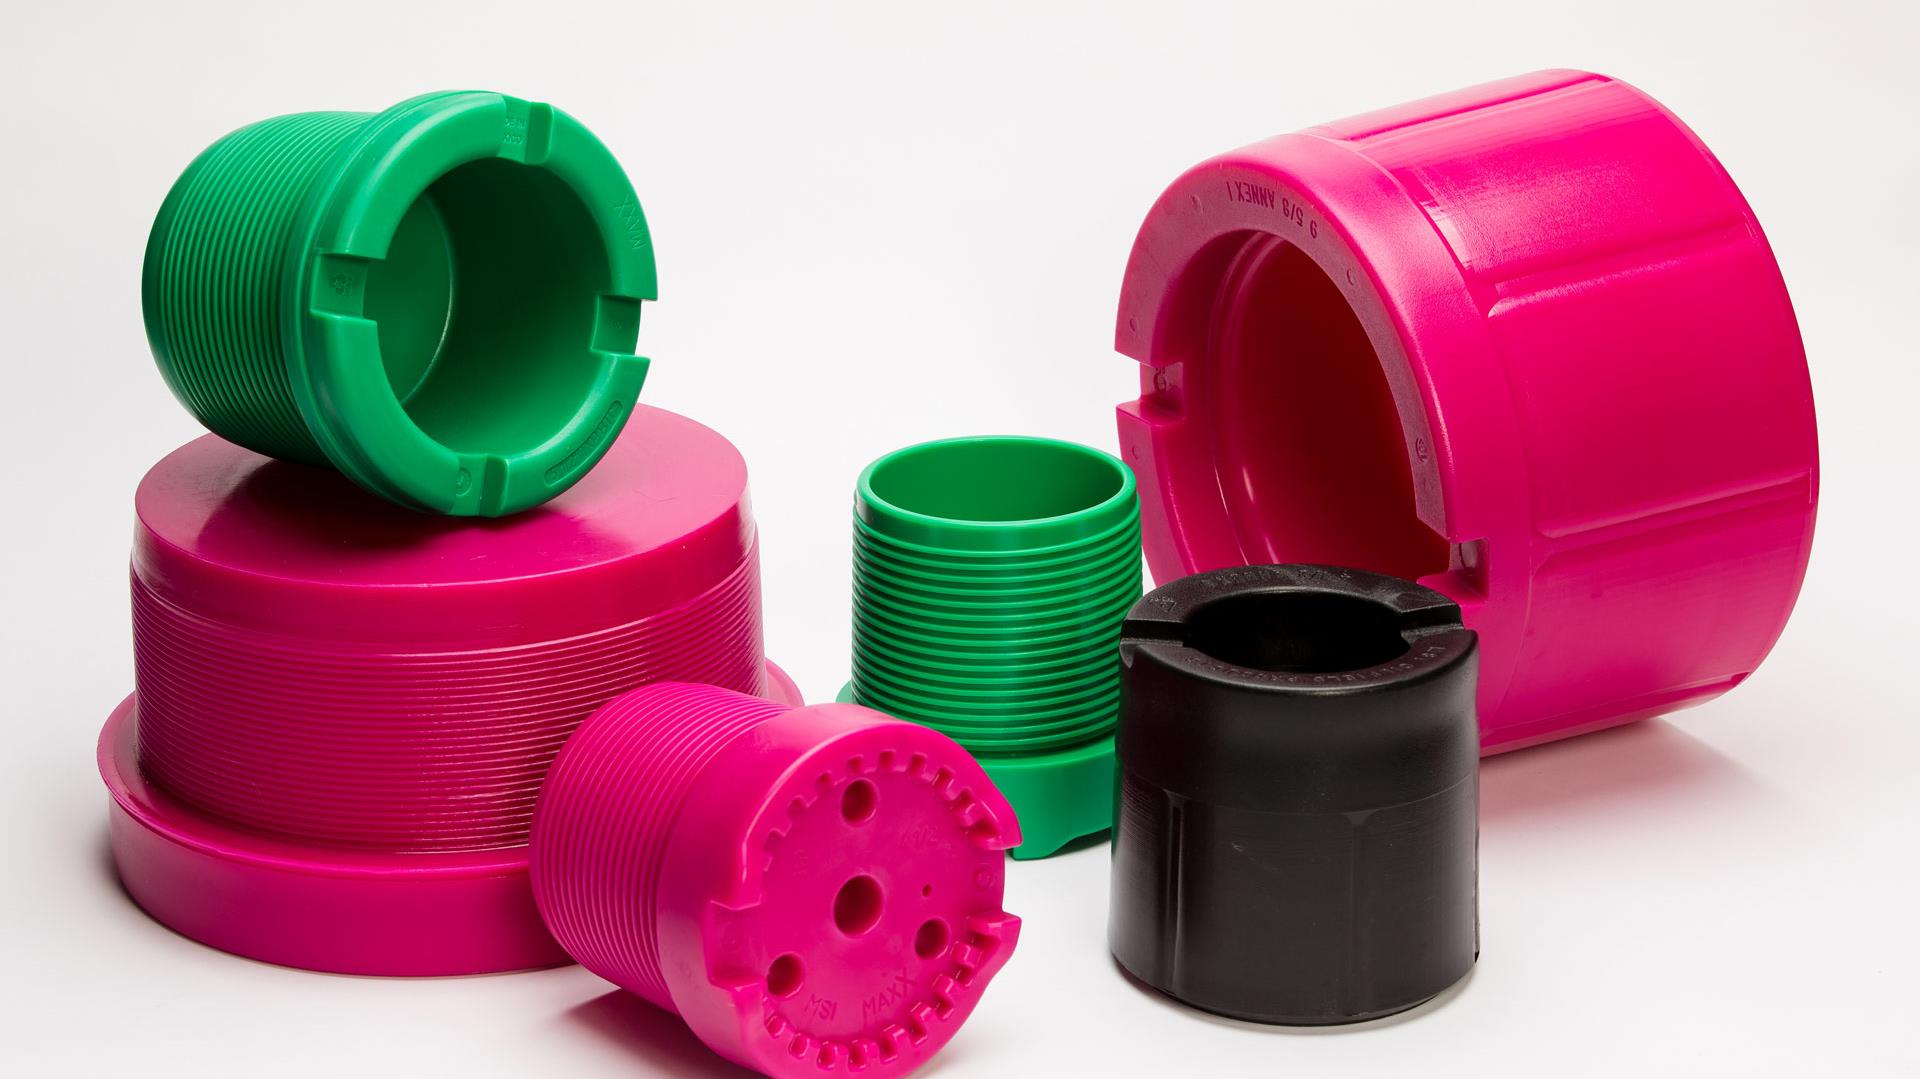 MaxX Tubing and Casing Thread Protectors line